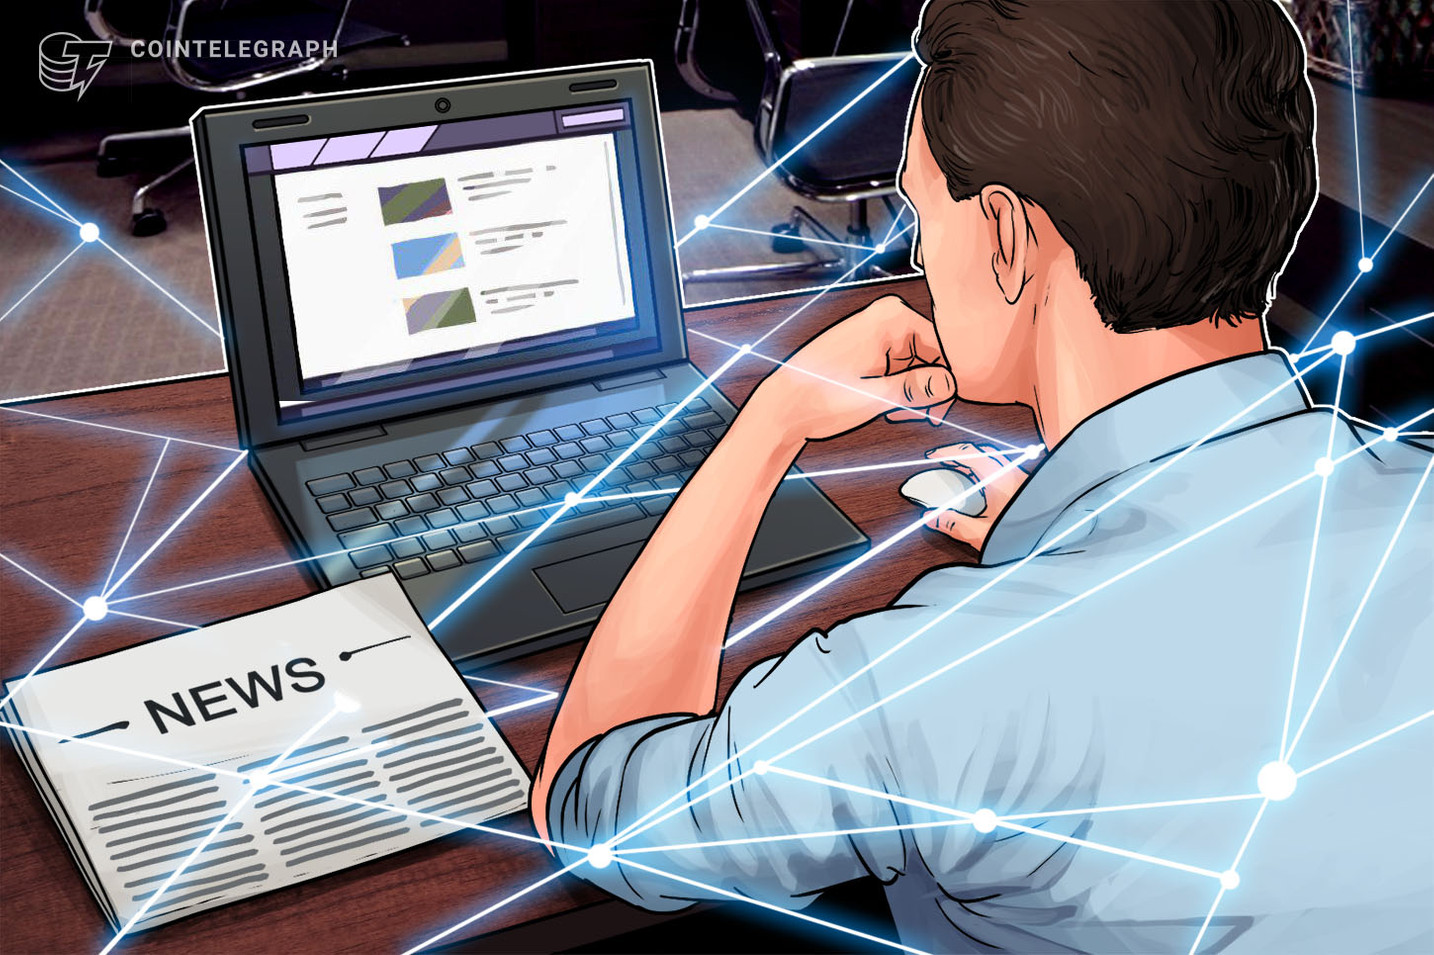 New York Times Posts 'Blockchain Exploration' Job Listing, Removes It Hours Later